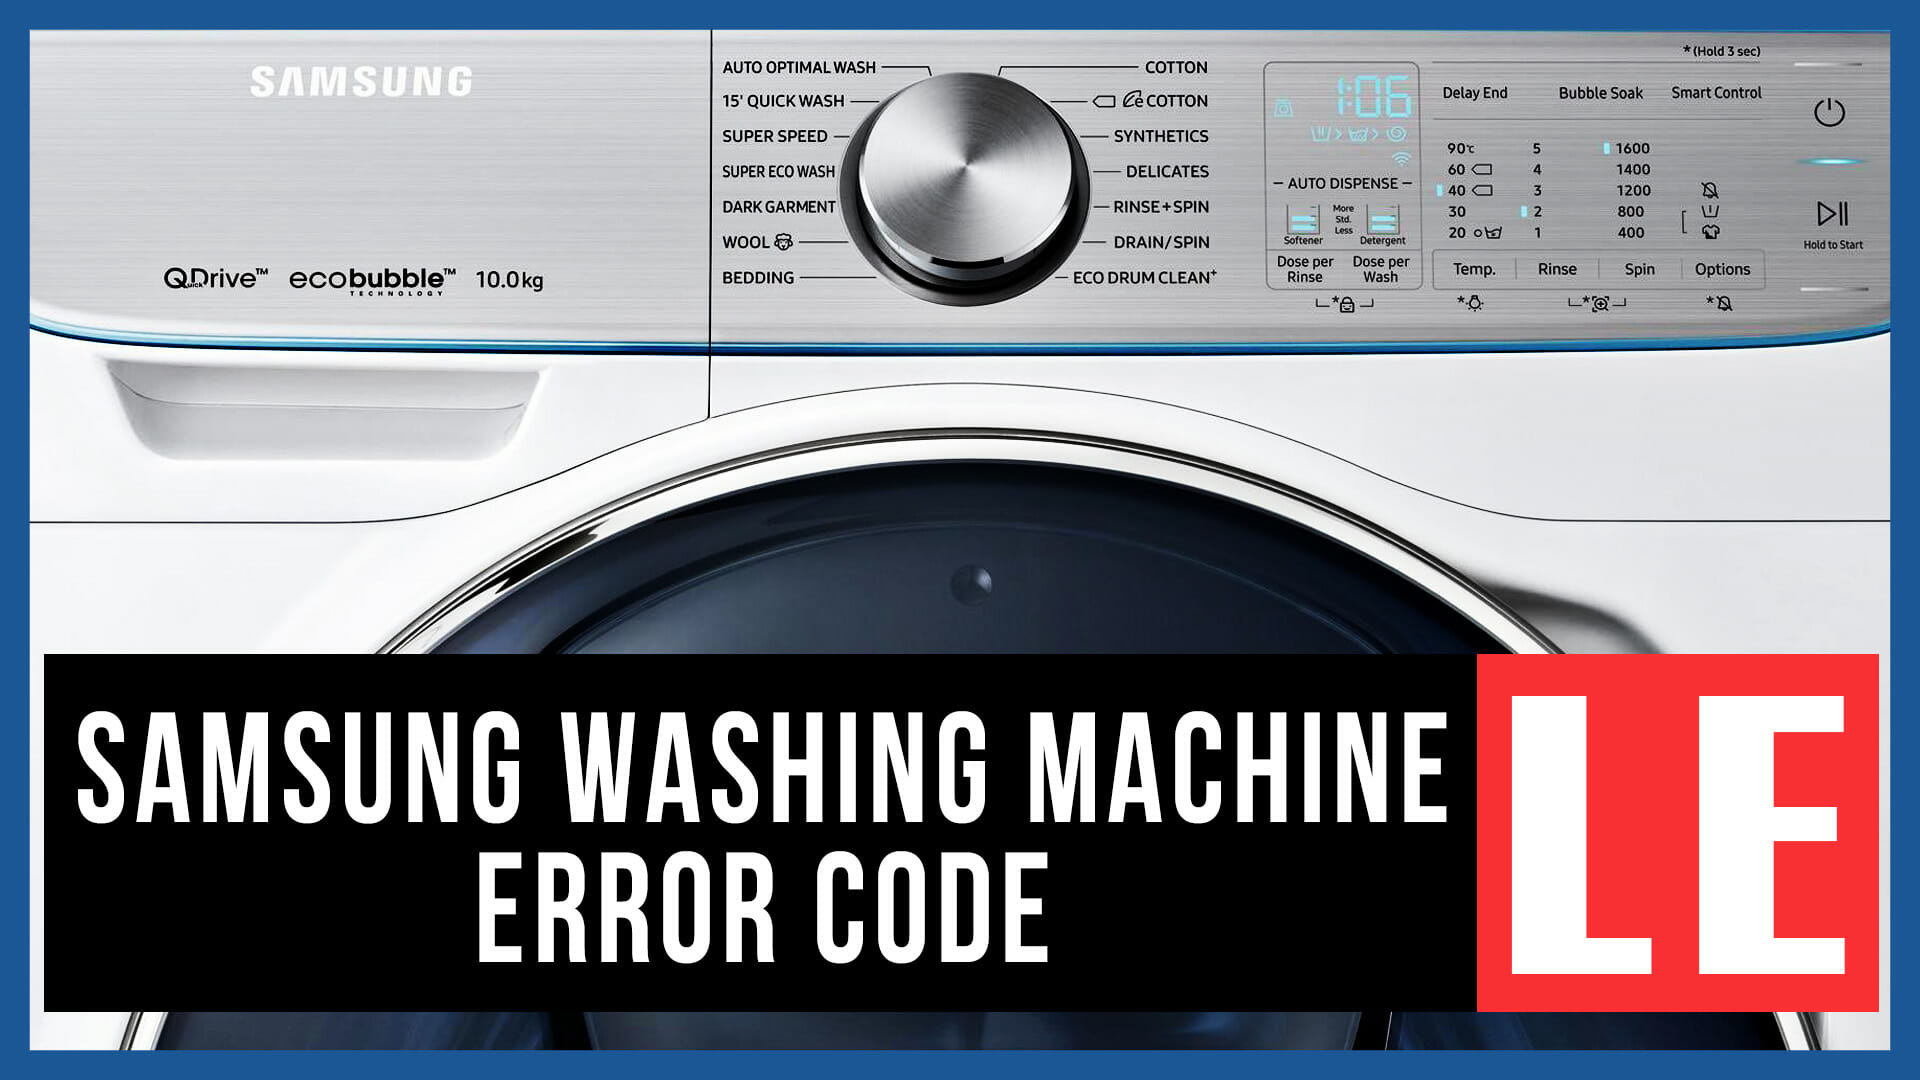 Samsung washing machine error code LE